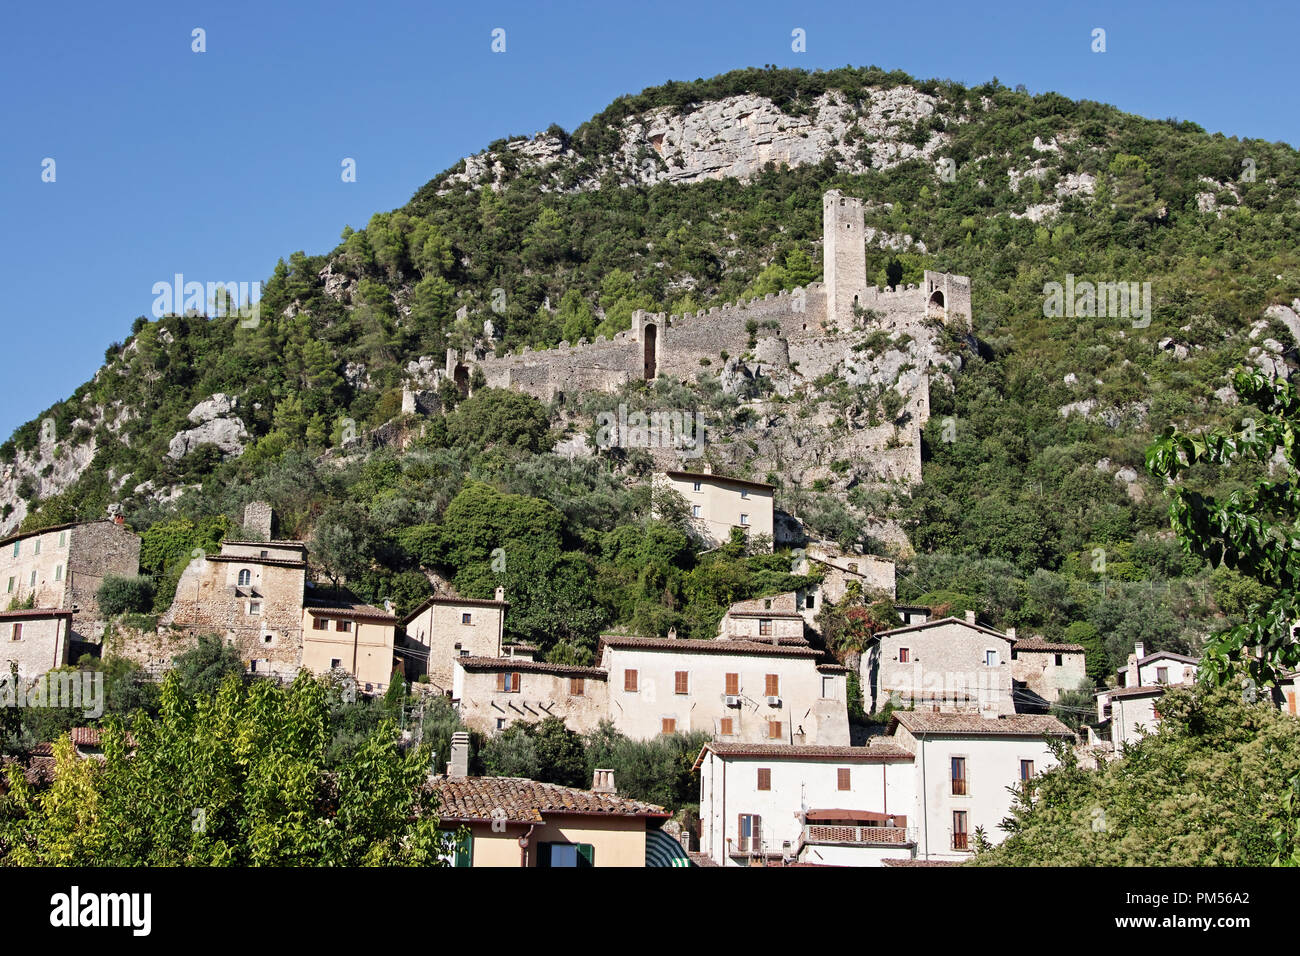 Ferentillo, a glimpse of the side of Precetto and the ruins of its fortress - Stock Image